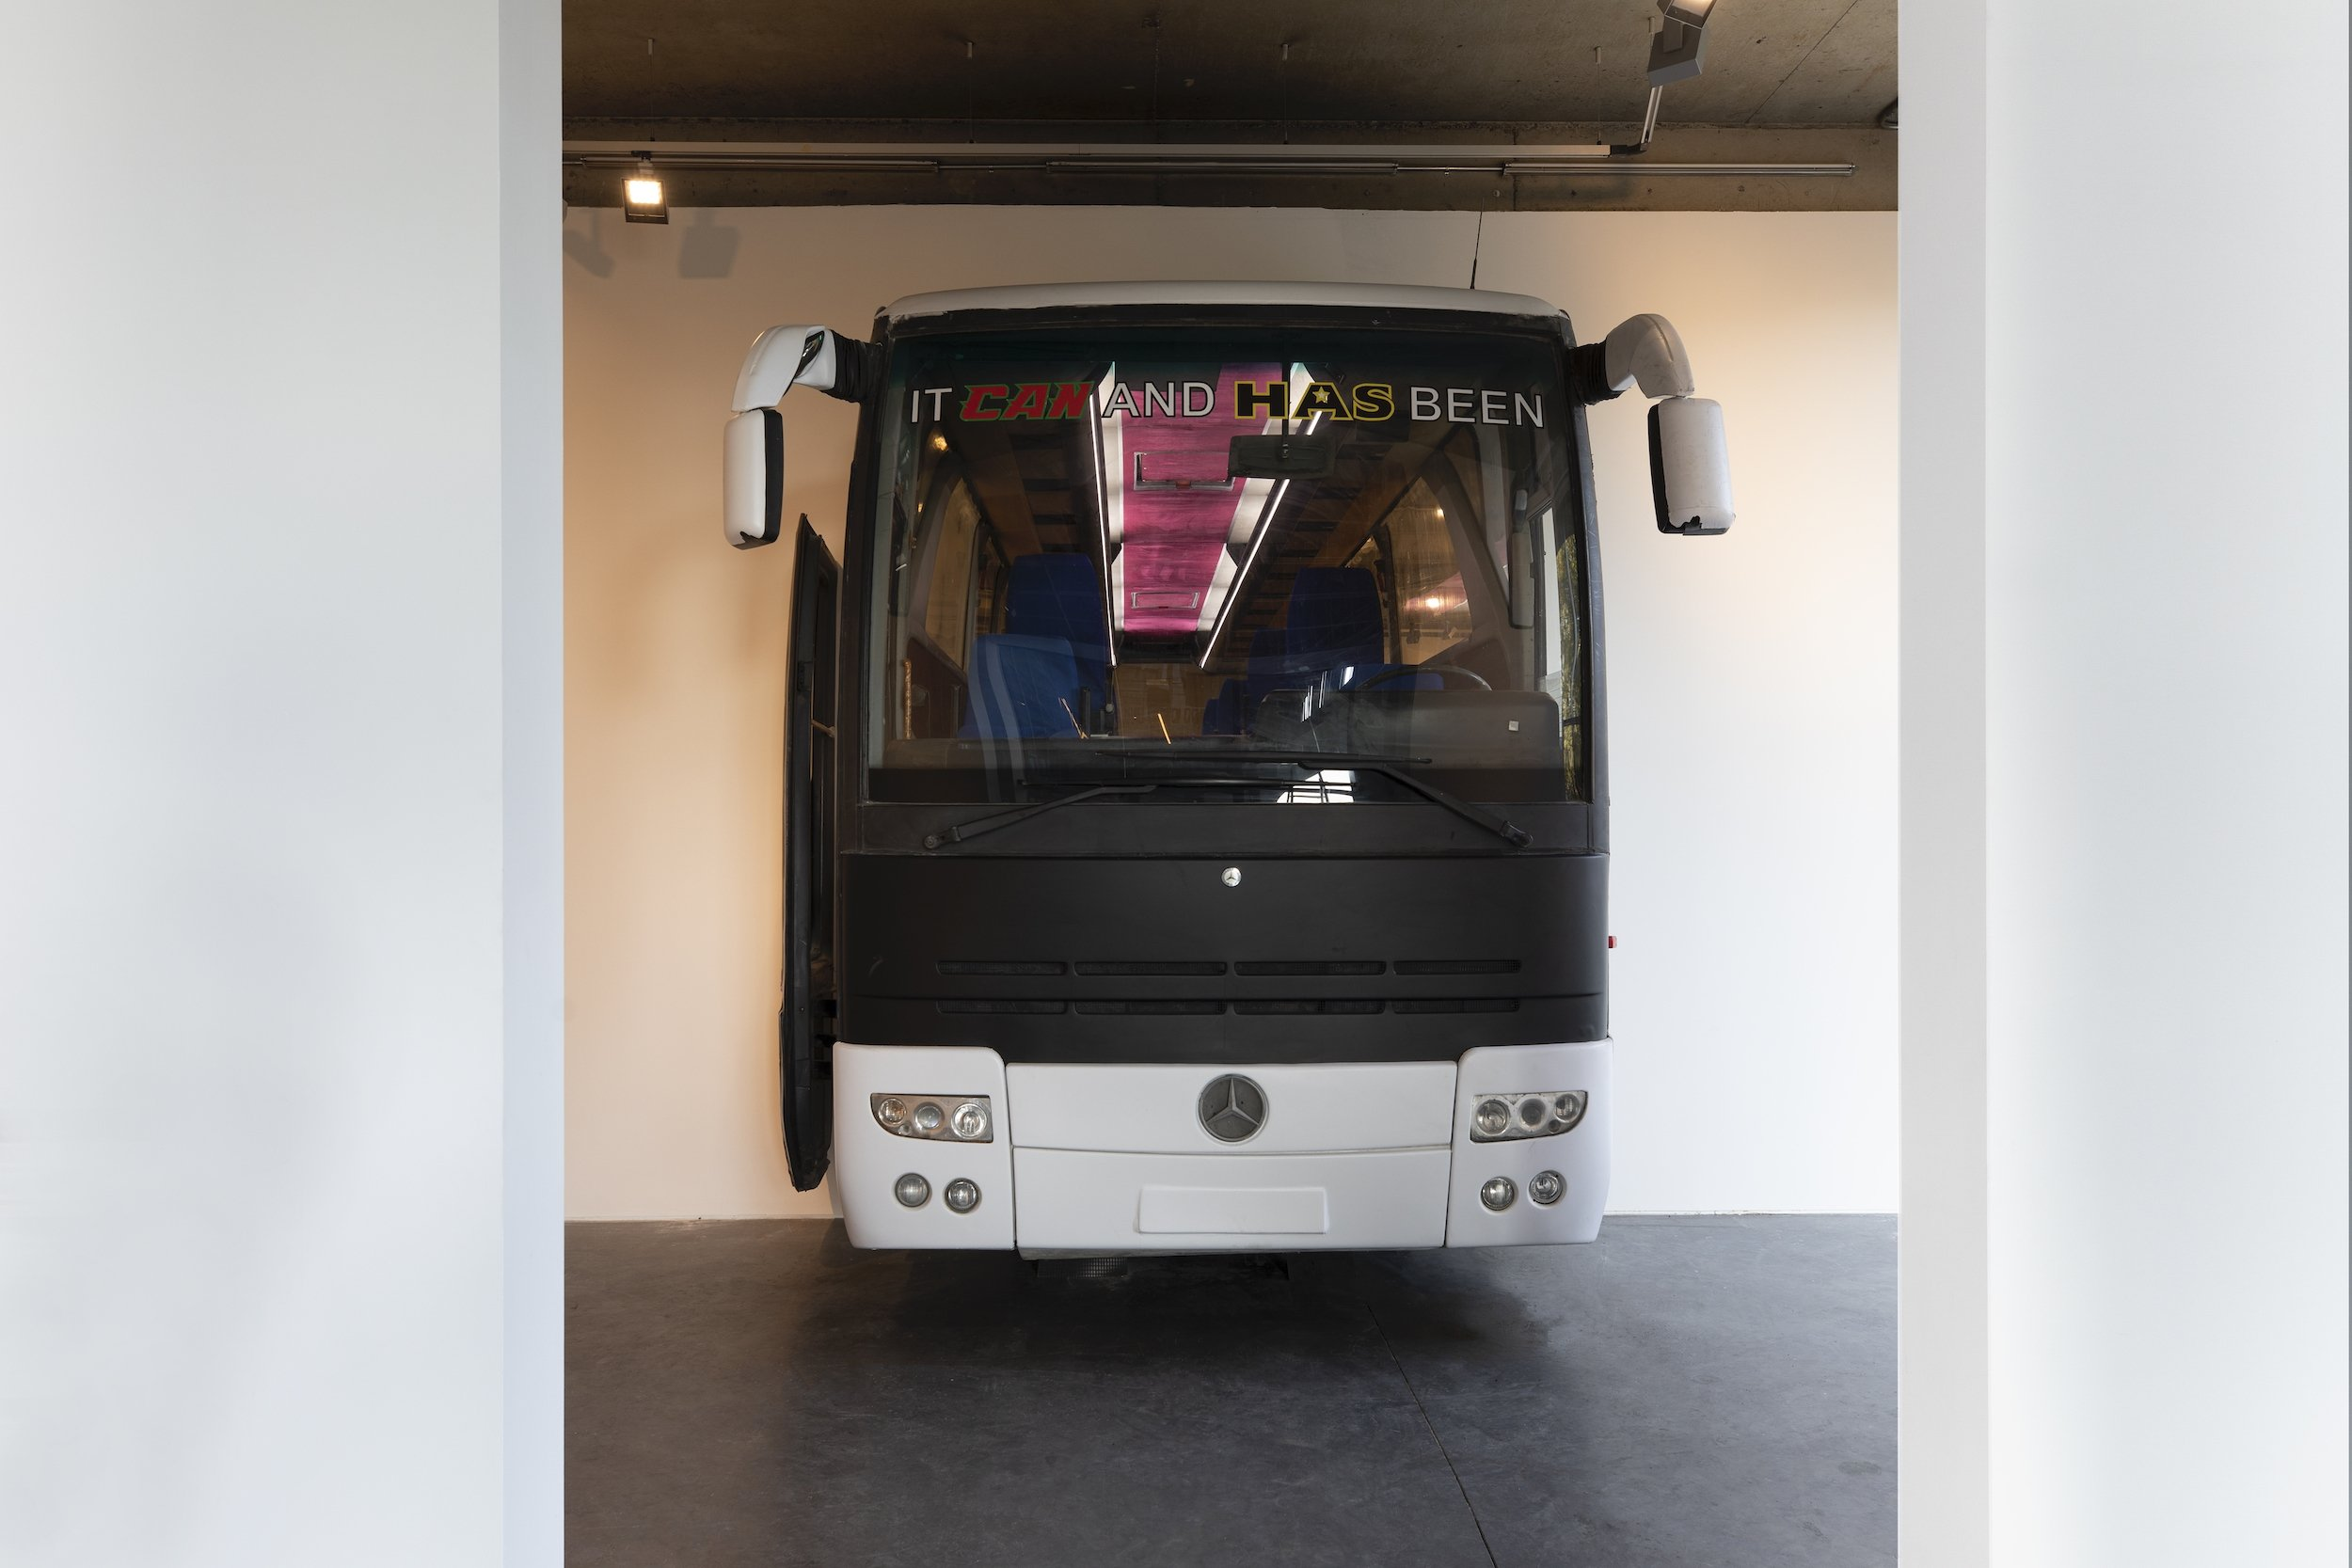 Ahmet Öğüt's bus at 'It Can and Has Been' (2021). (Courtesy of Dirimart)